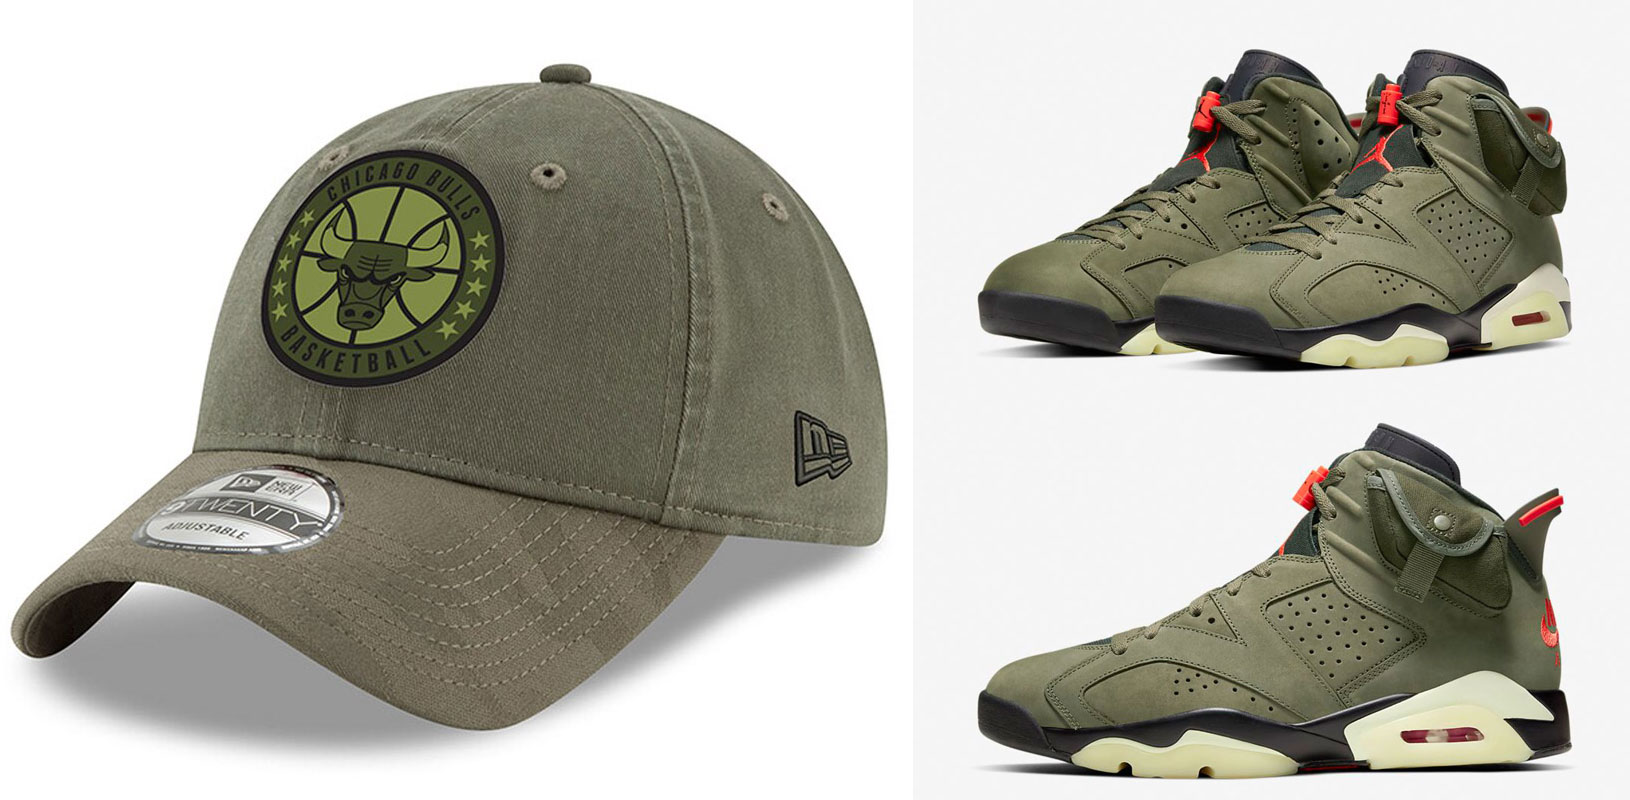 travis-scott-air-jordan-6-olive-bulls-hat-match-1